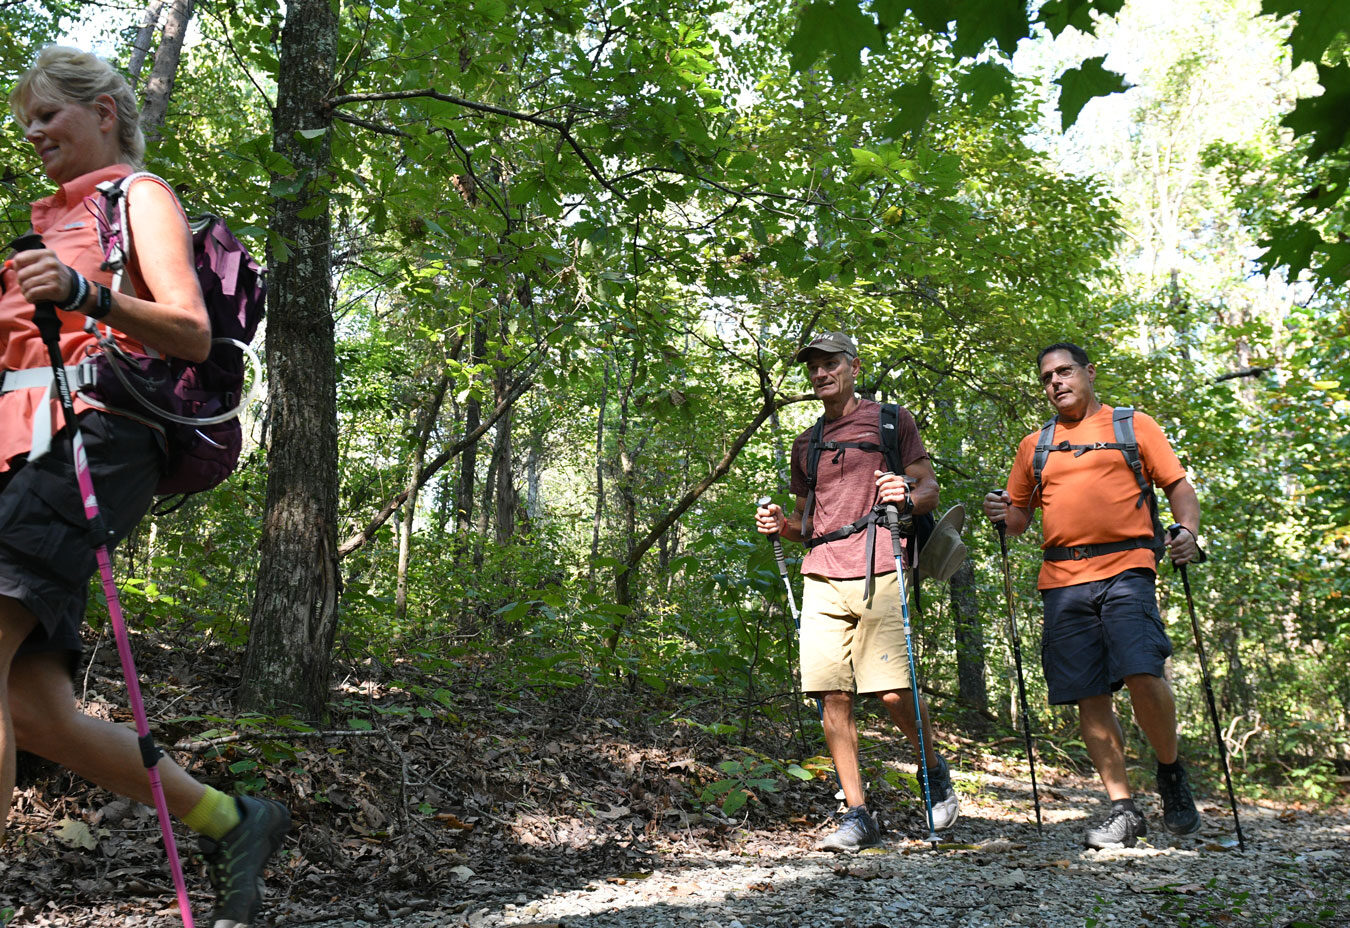 Villagers hiking on one of the Tellico Village hiking trails.